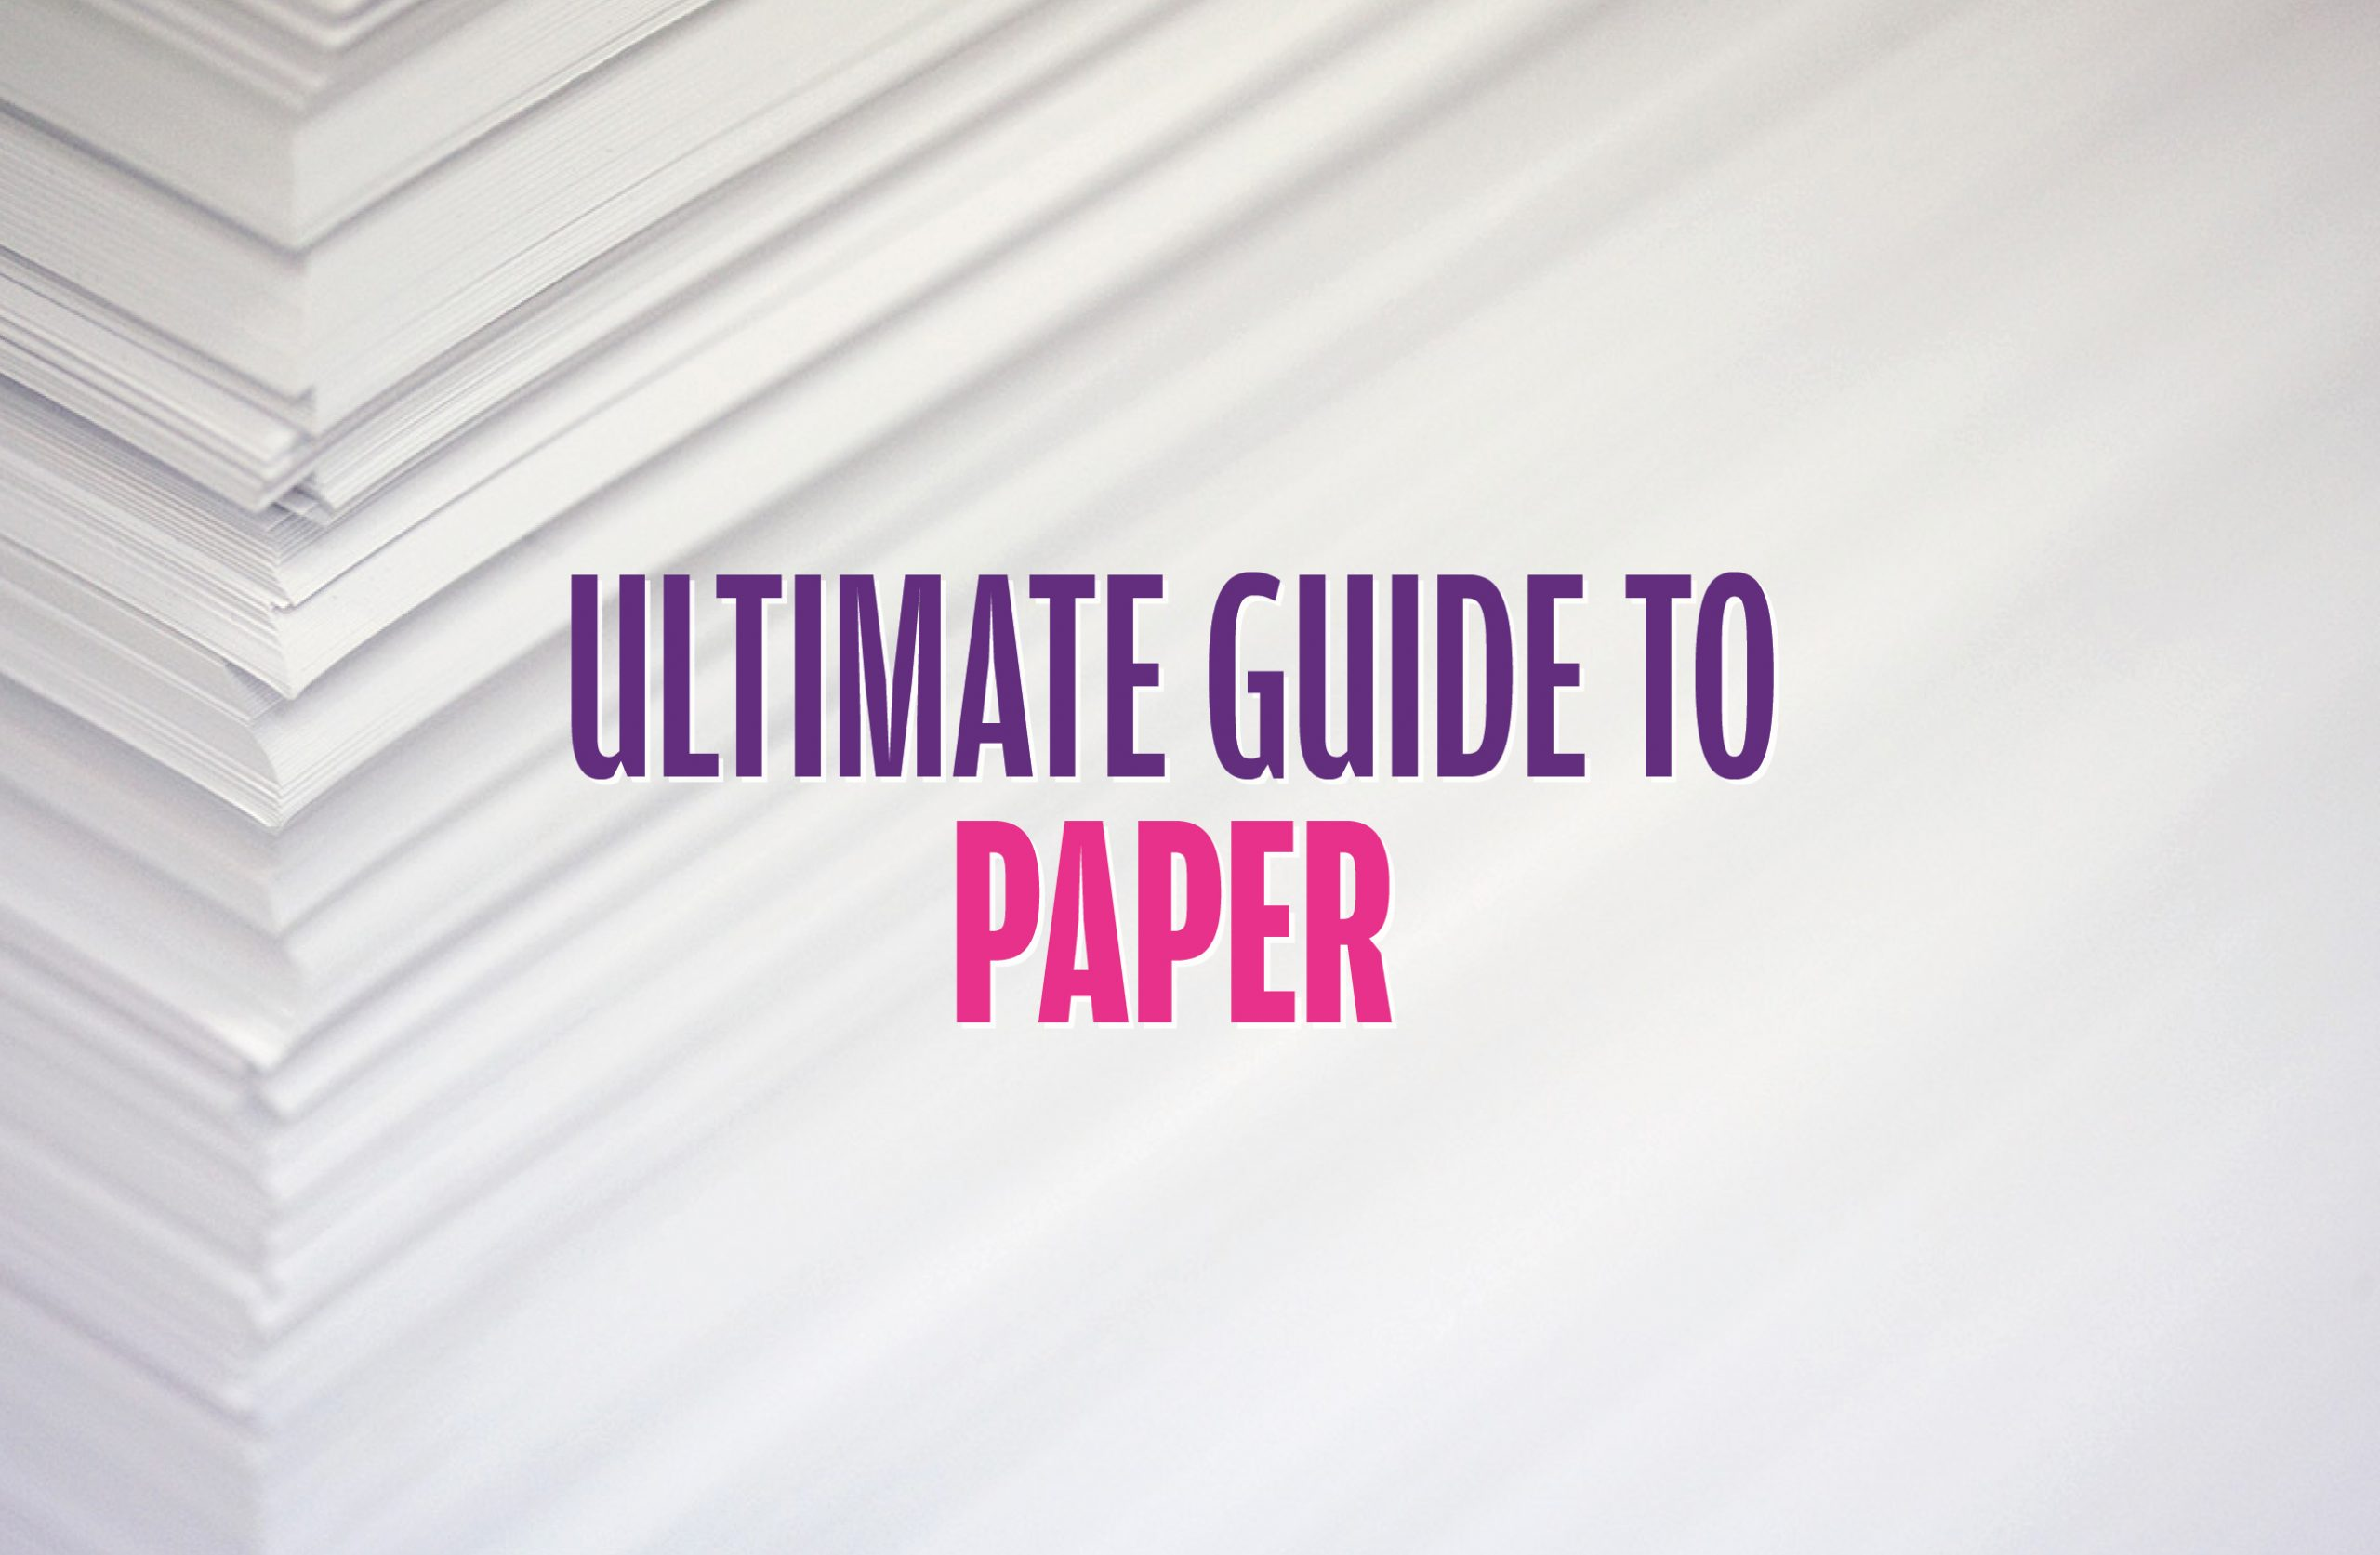 Ultimate Guide to Paper